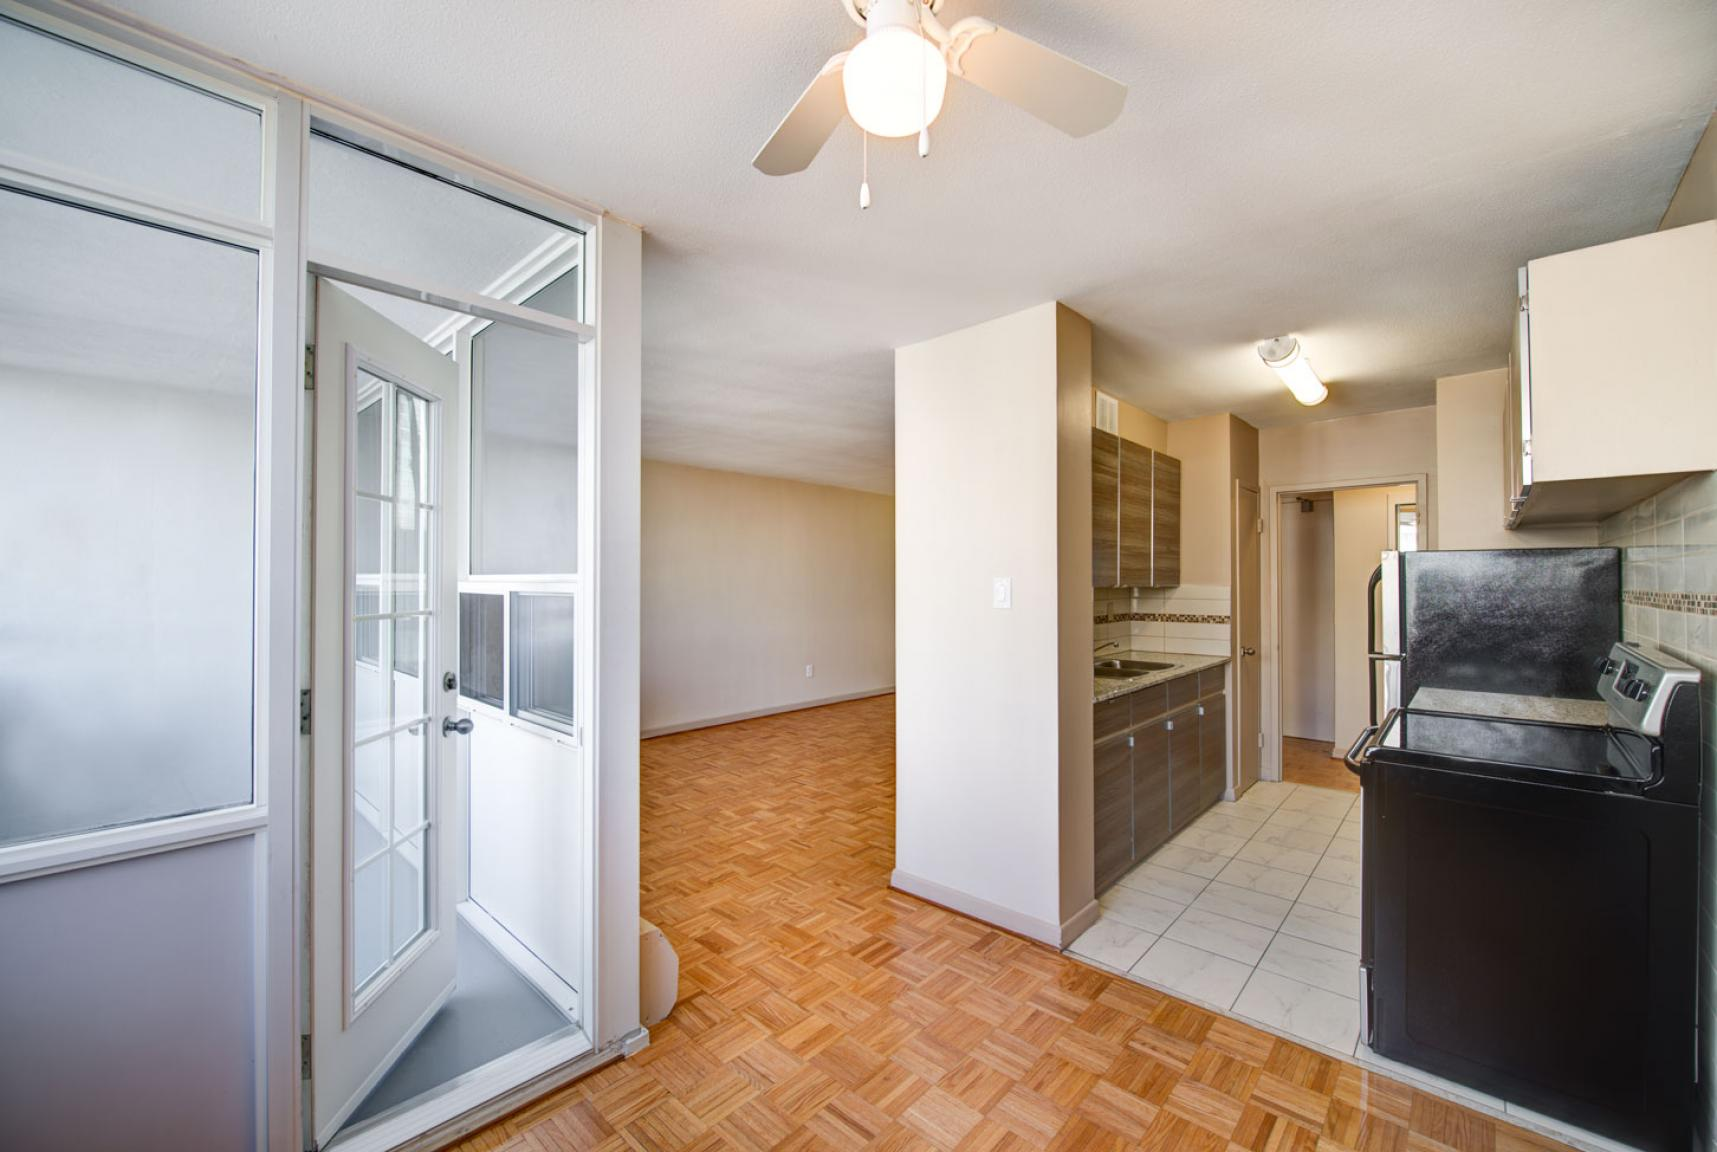 1 bedroom Apartments for rent in Toronto at Holly Tower - Photo 11 - RentersPages – L399824